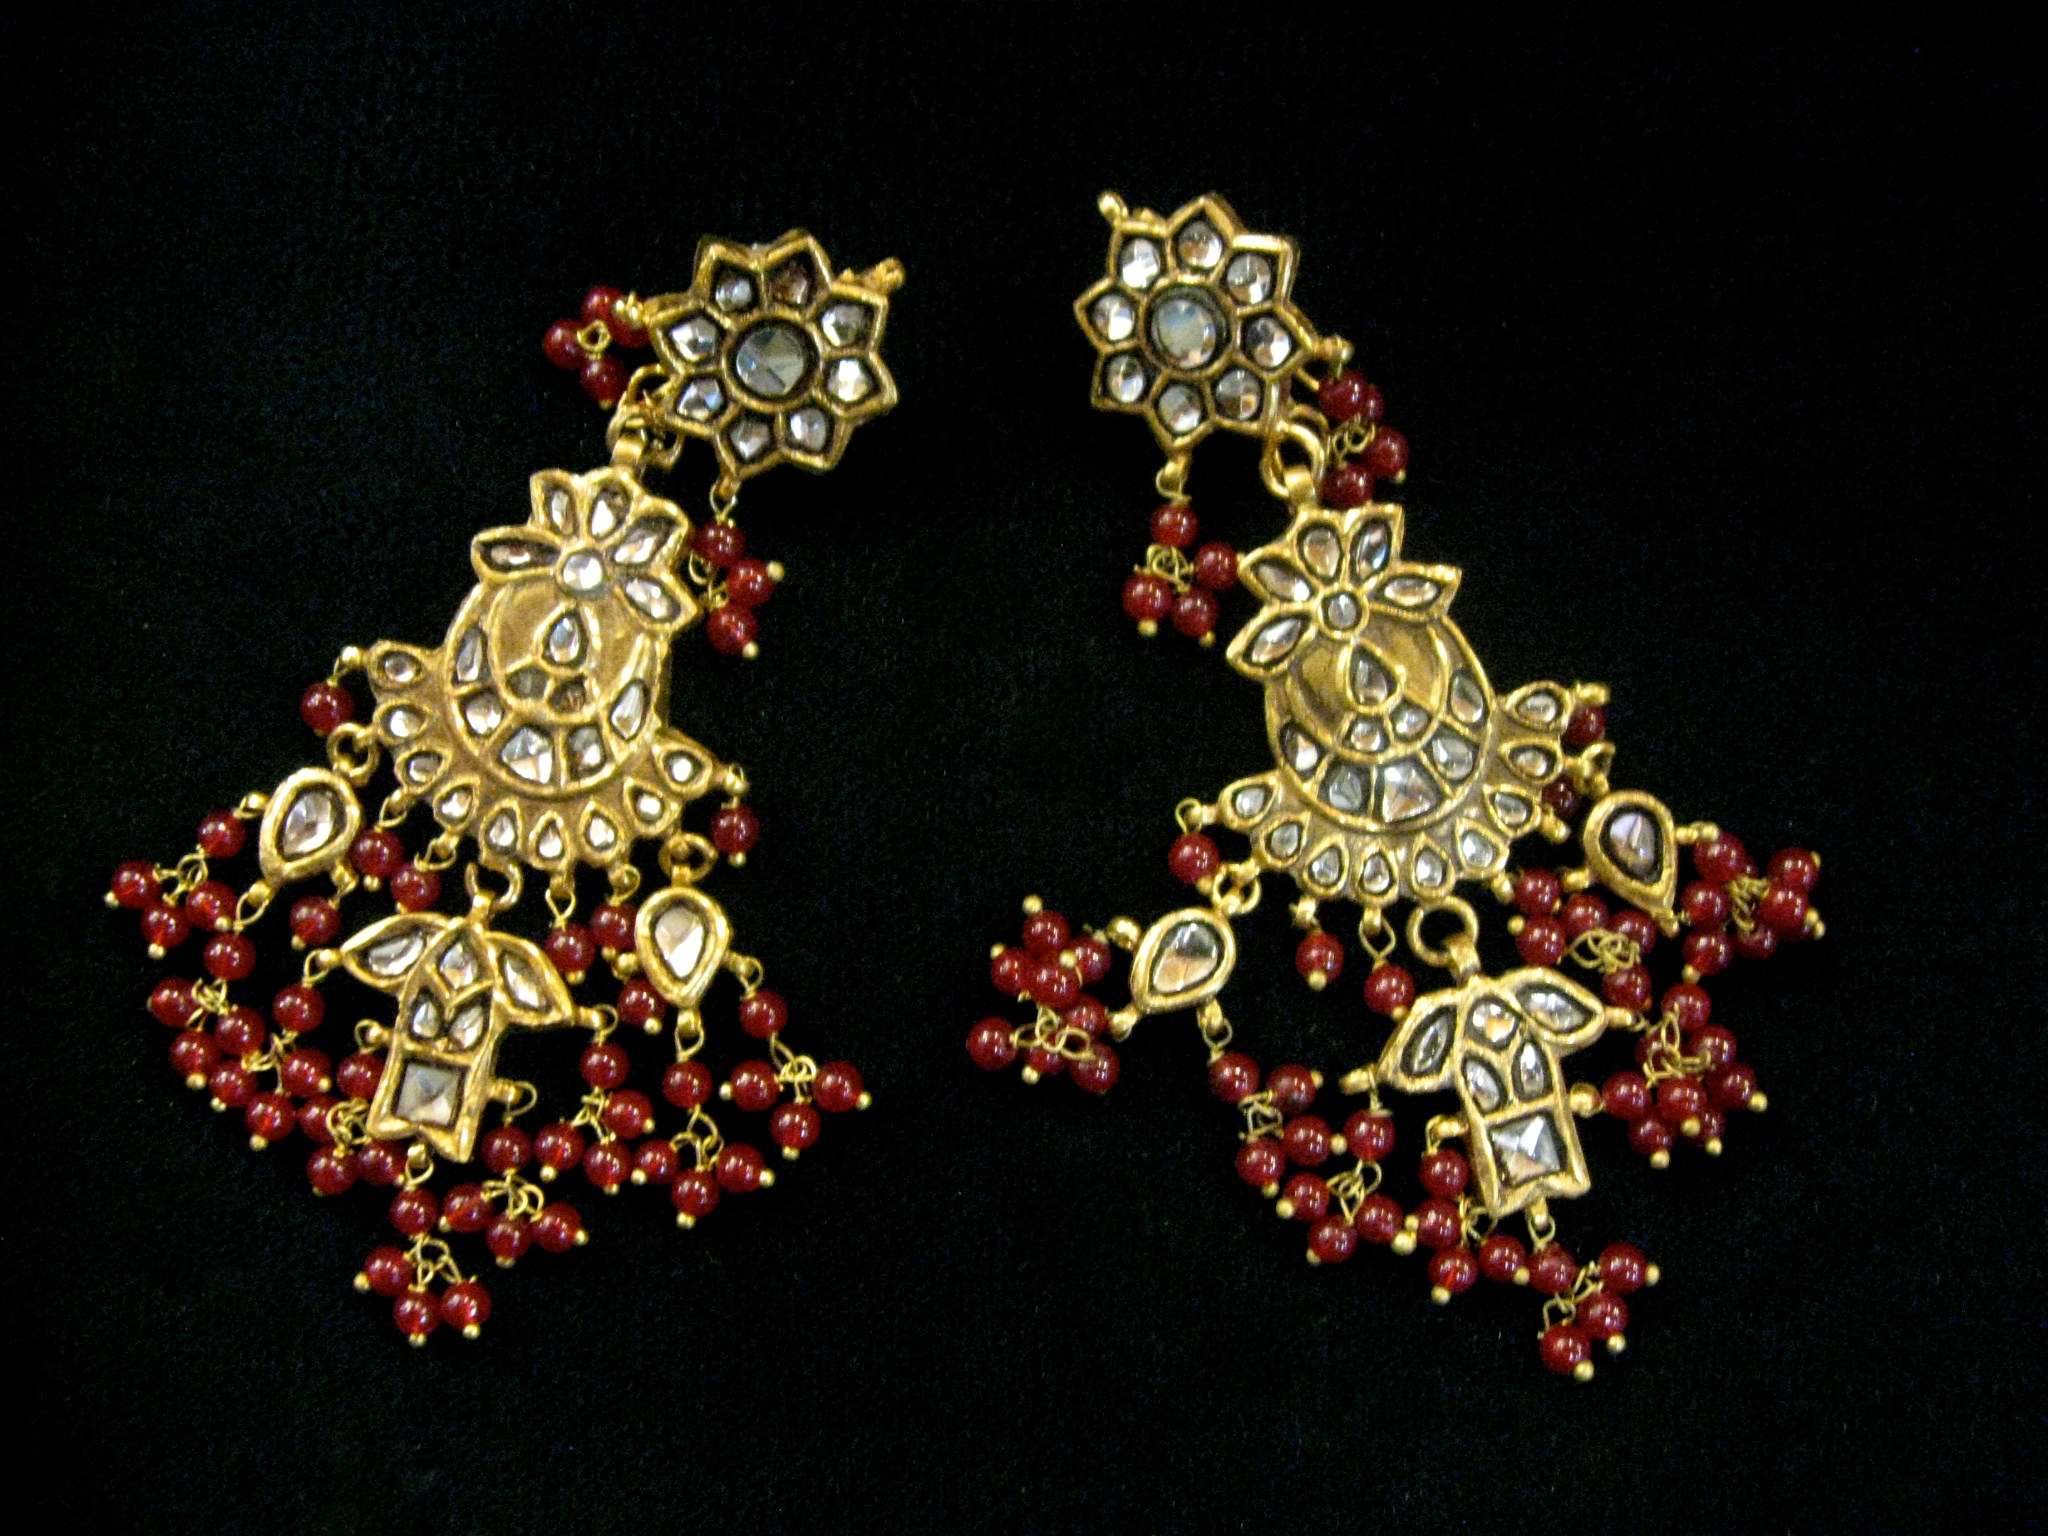 Incredible Turkish 22k Gold over Silver Earrings